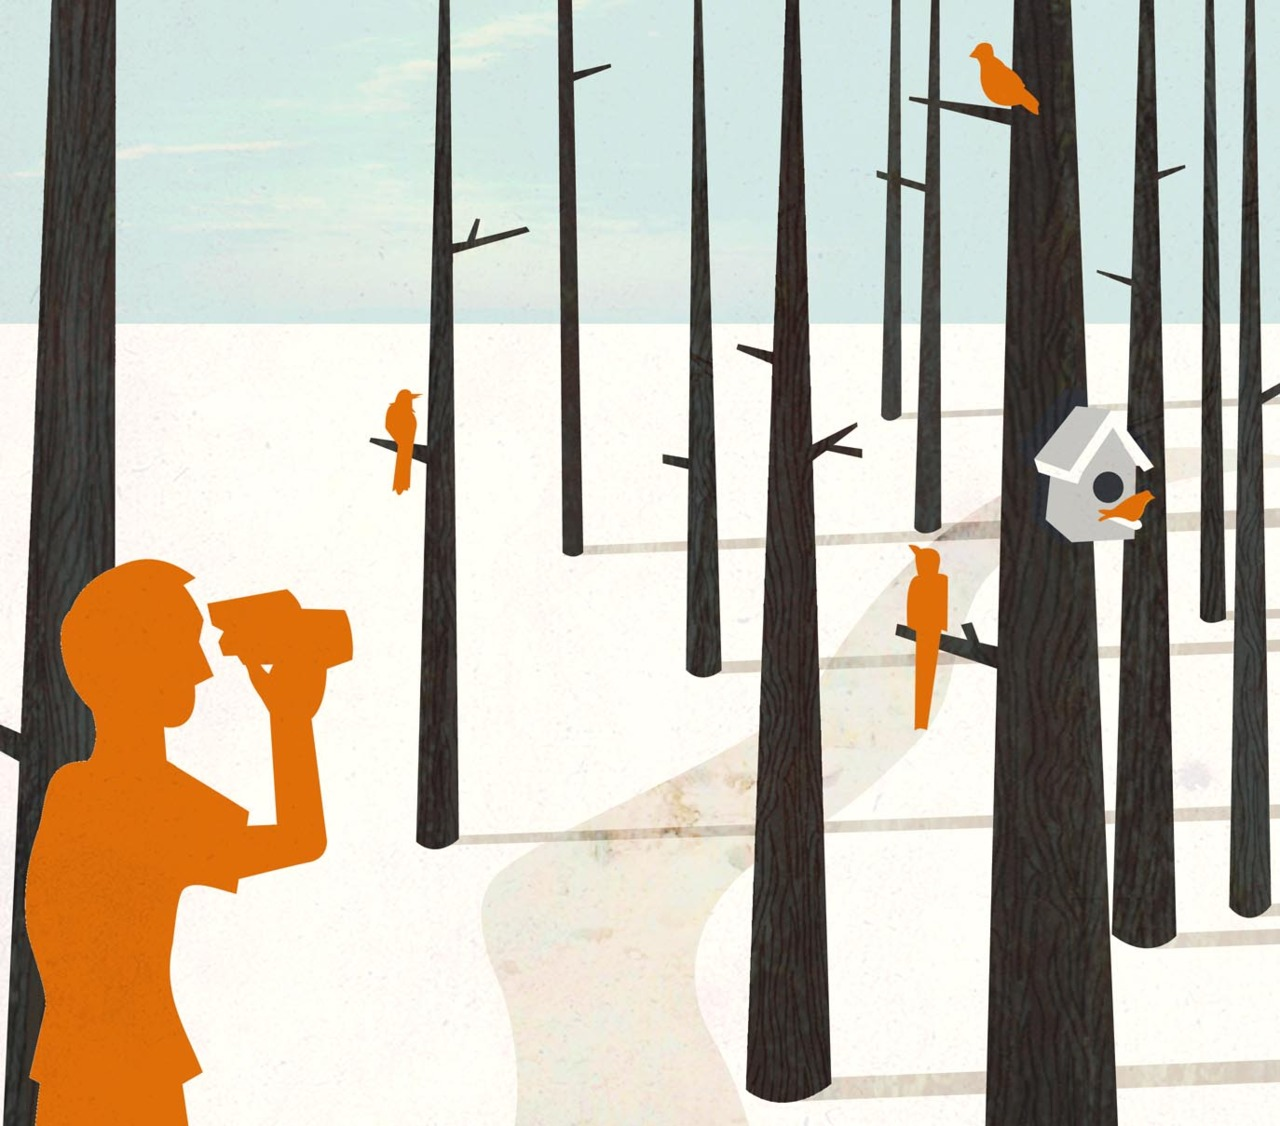 Nature walk/bird watching illustration for YCN